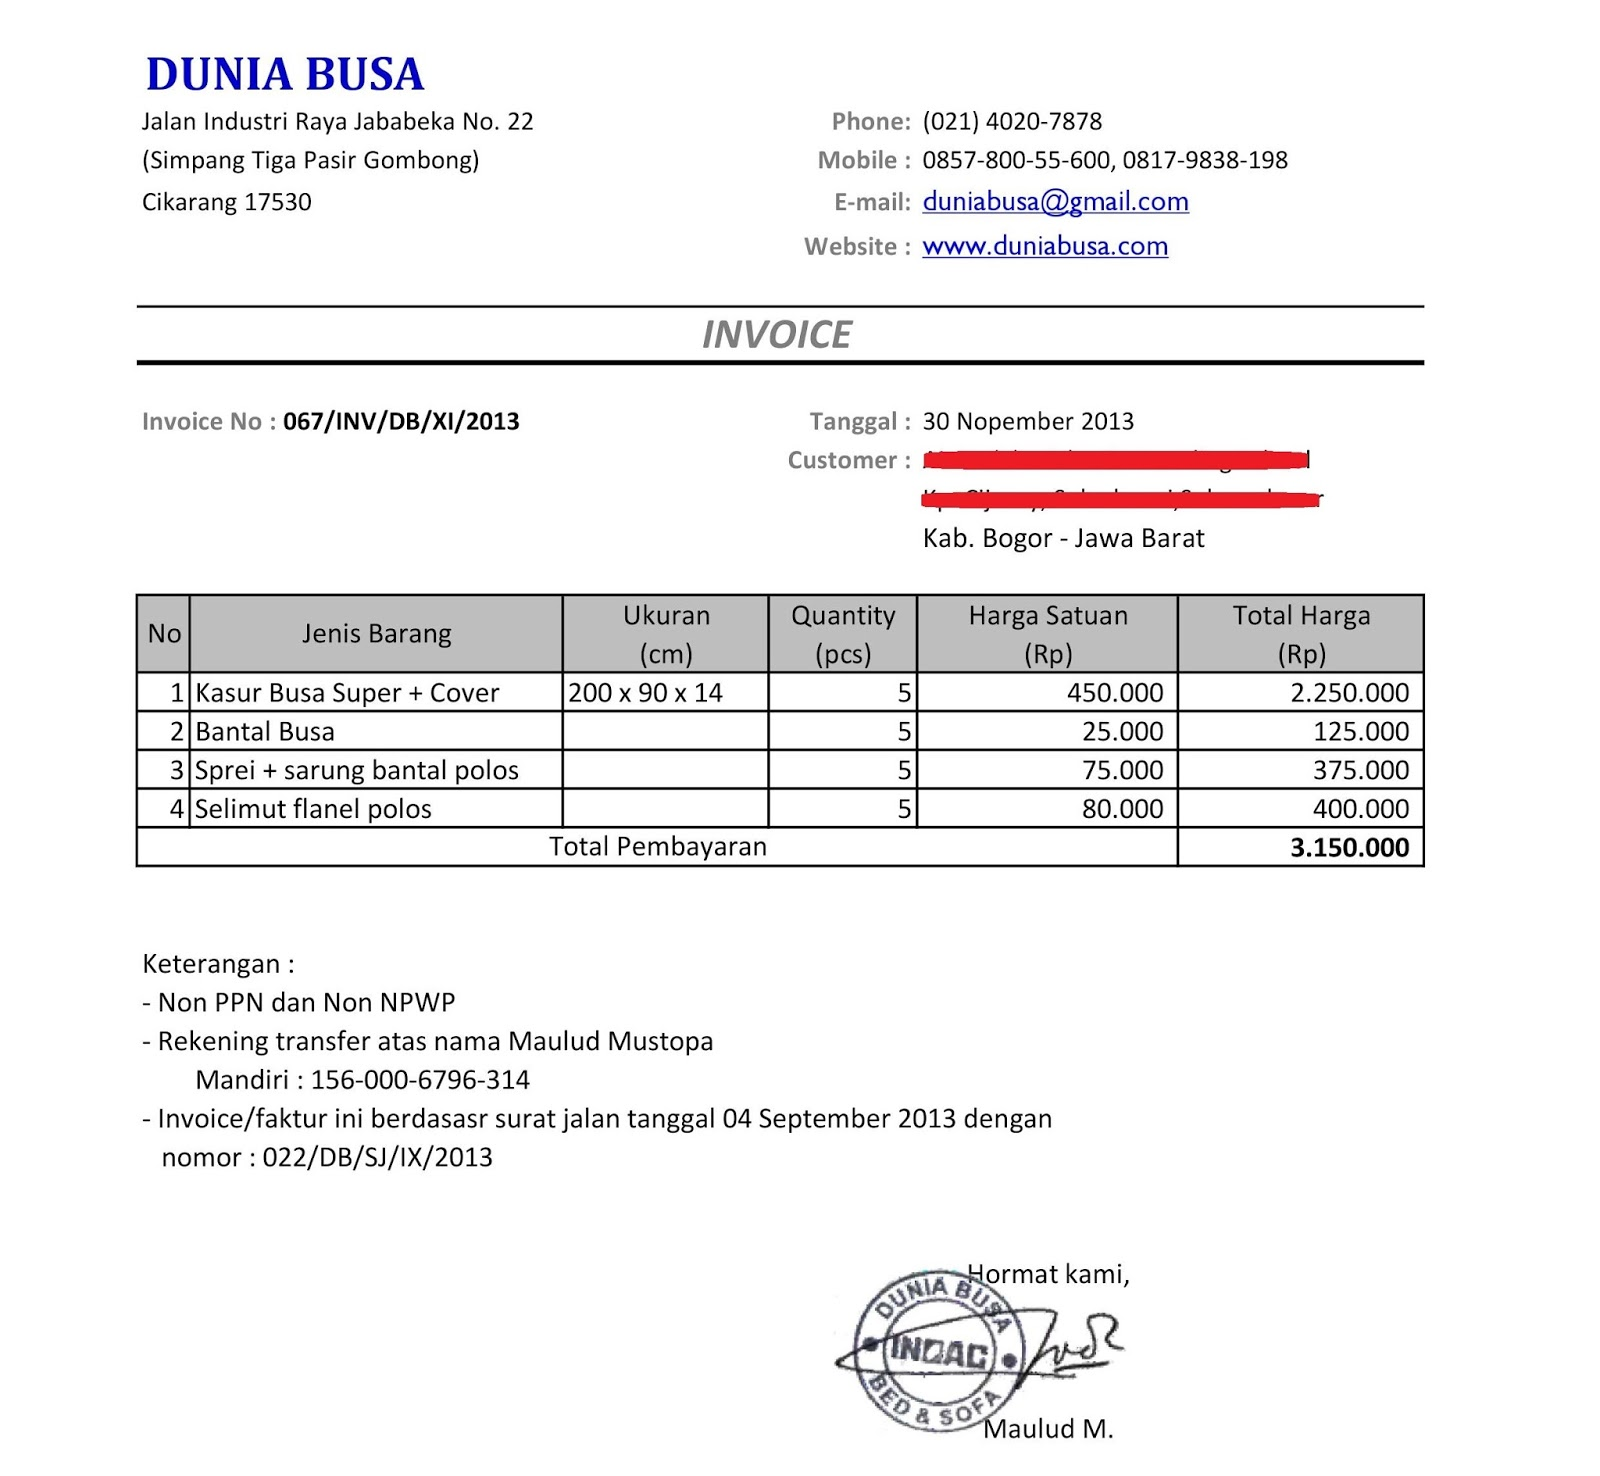 Ultrablogus  Splendid Free Invoice Online  Create Invoice Online  Invoice Template  With Engaging Contoh Format Invoice Atau Surat Tagihan  Brankas Arsip  Free Invoice Online With Agreeable Free Online Printable Invoices Also Format For Proforma Invoice In Addition Invoice Software Freeware And Personalised Duplicate Invoice Books As Well As Free Download Invoice Software Additionally Blank Proforma Invoice Template From Sklepco With Ultrablogus  Engaging Free Invoice Online  Create Invoice Online  Invoice Template  With Agreeable Contoh Format Invoice Atau Surat Tagihan  Brankas Arsip  Free Invoice Online And Splendid Free Online Printable Invoices Also Format For Proforma Invoice In Addition Invoice Software Freeware From Sklepco